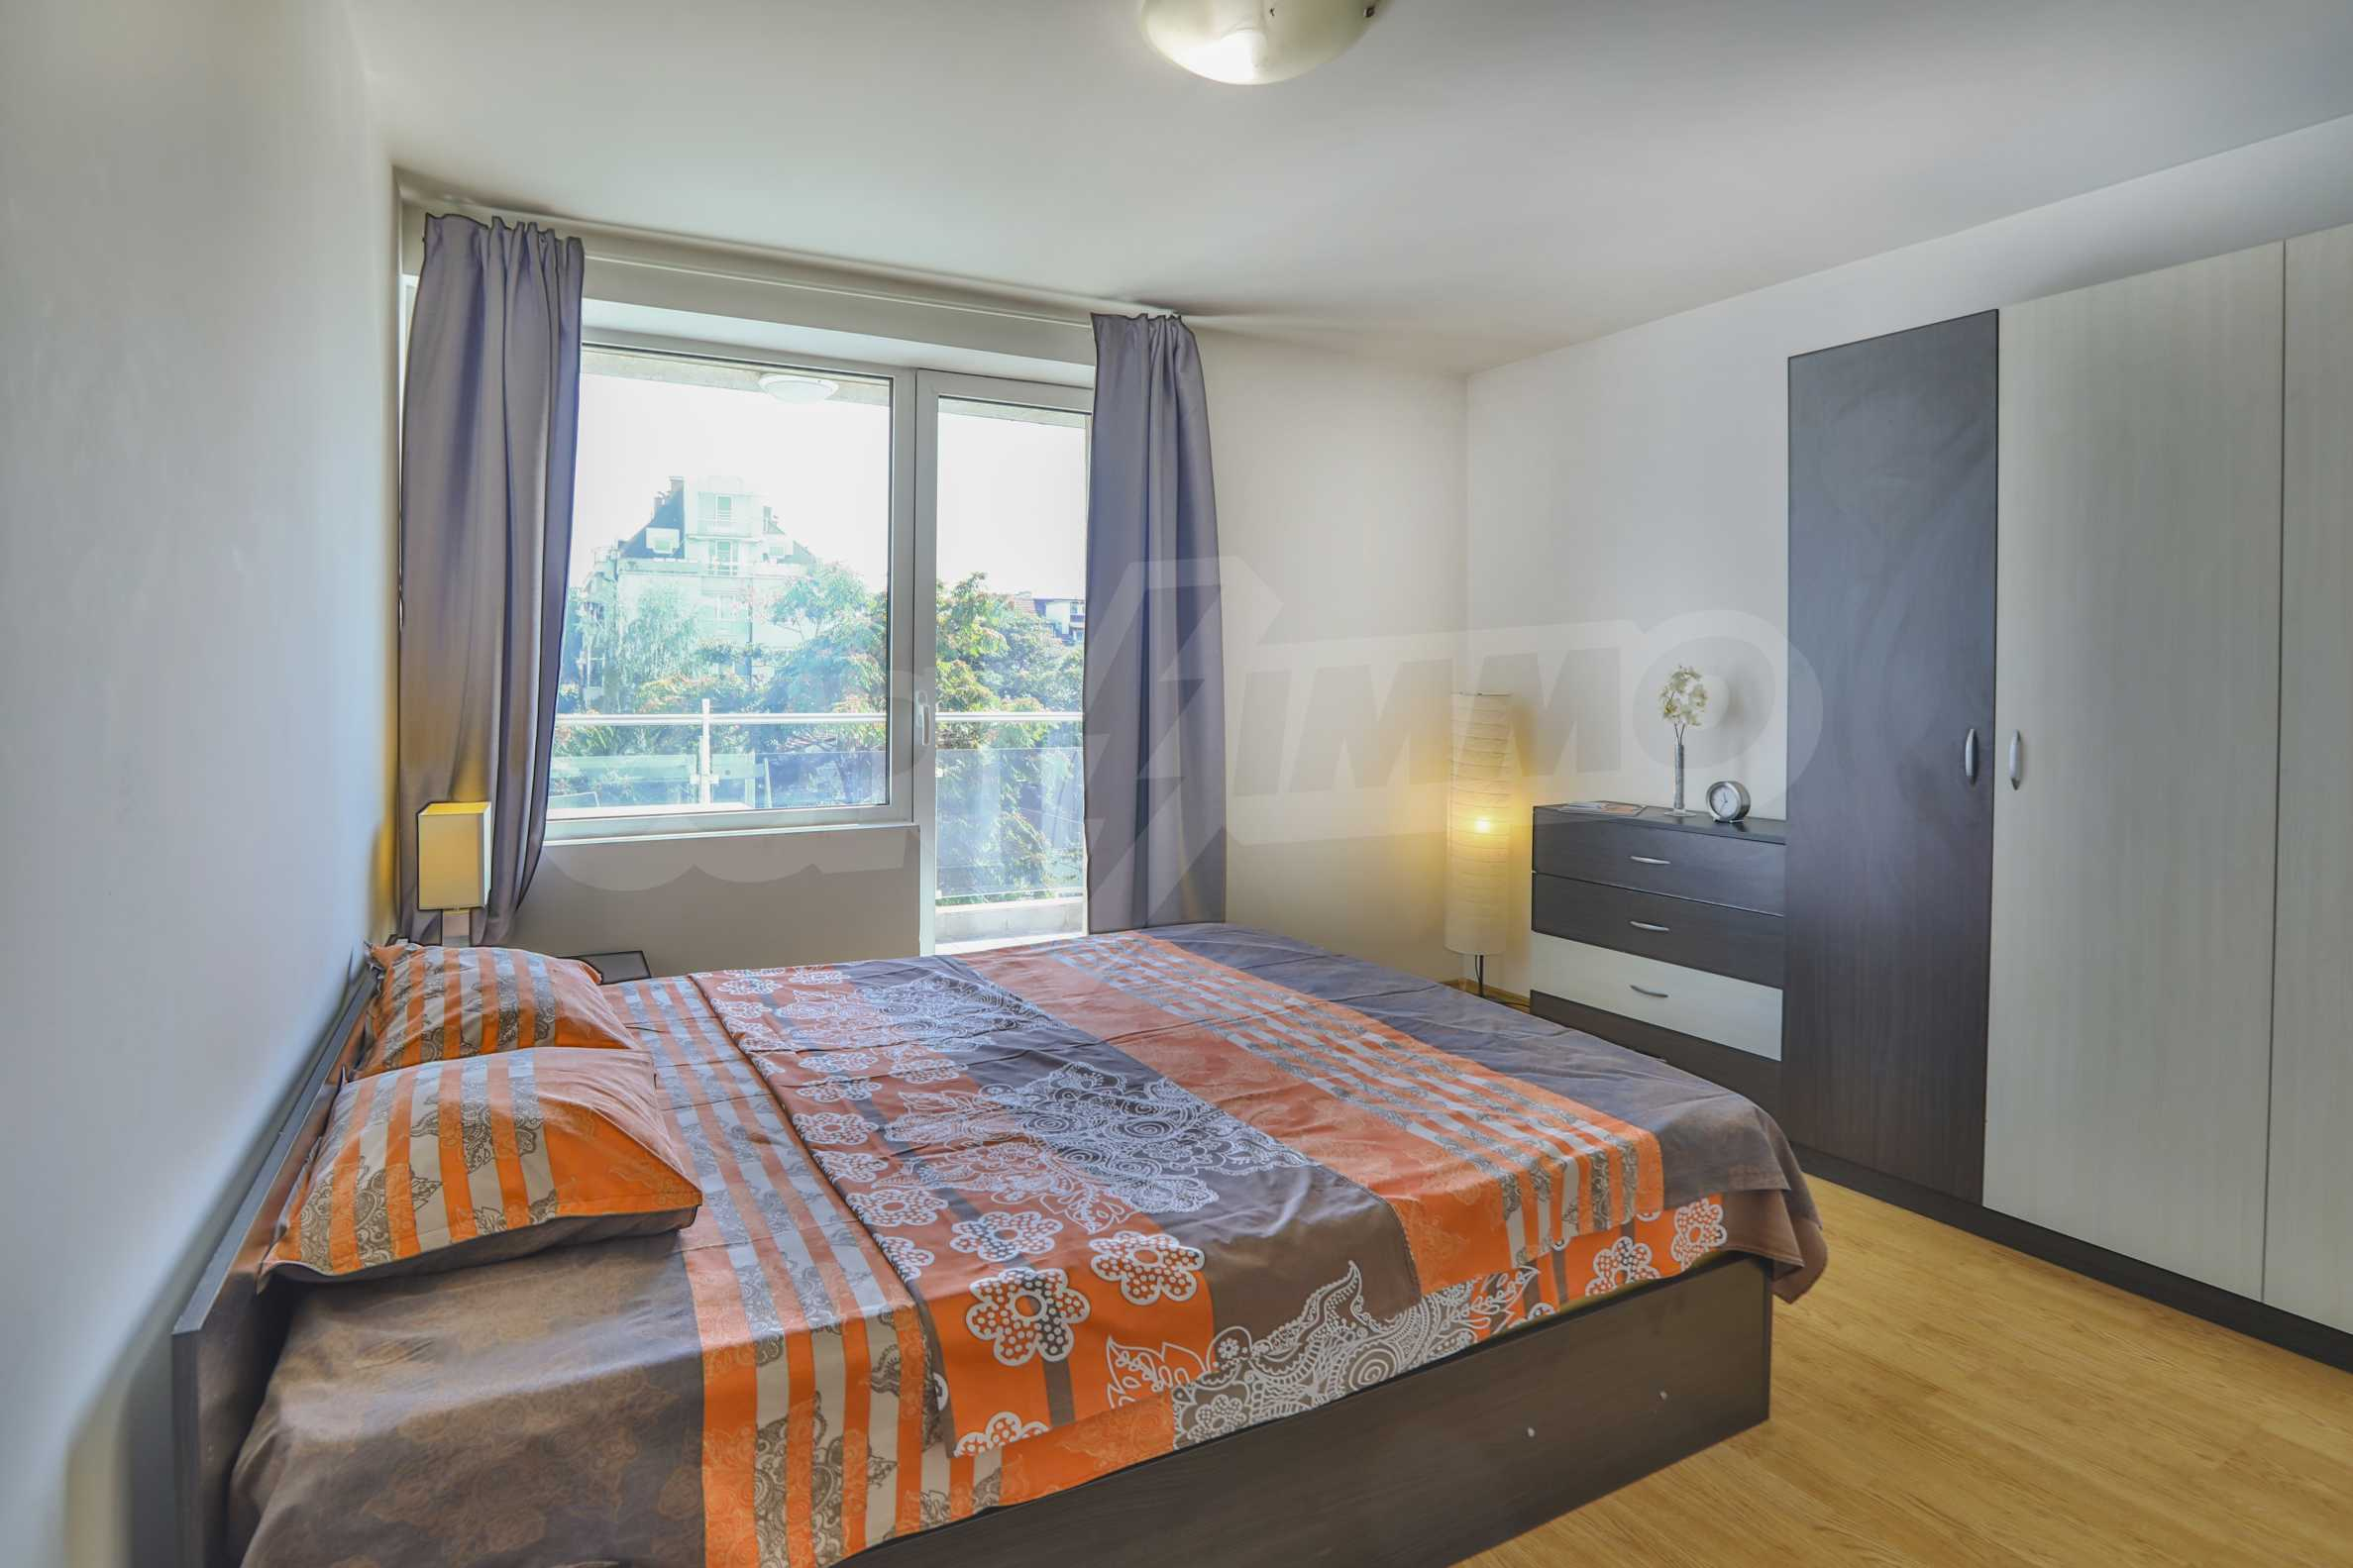 Two-bedroom apartment in the center with high rating on Airbnb 11